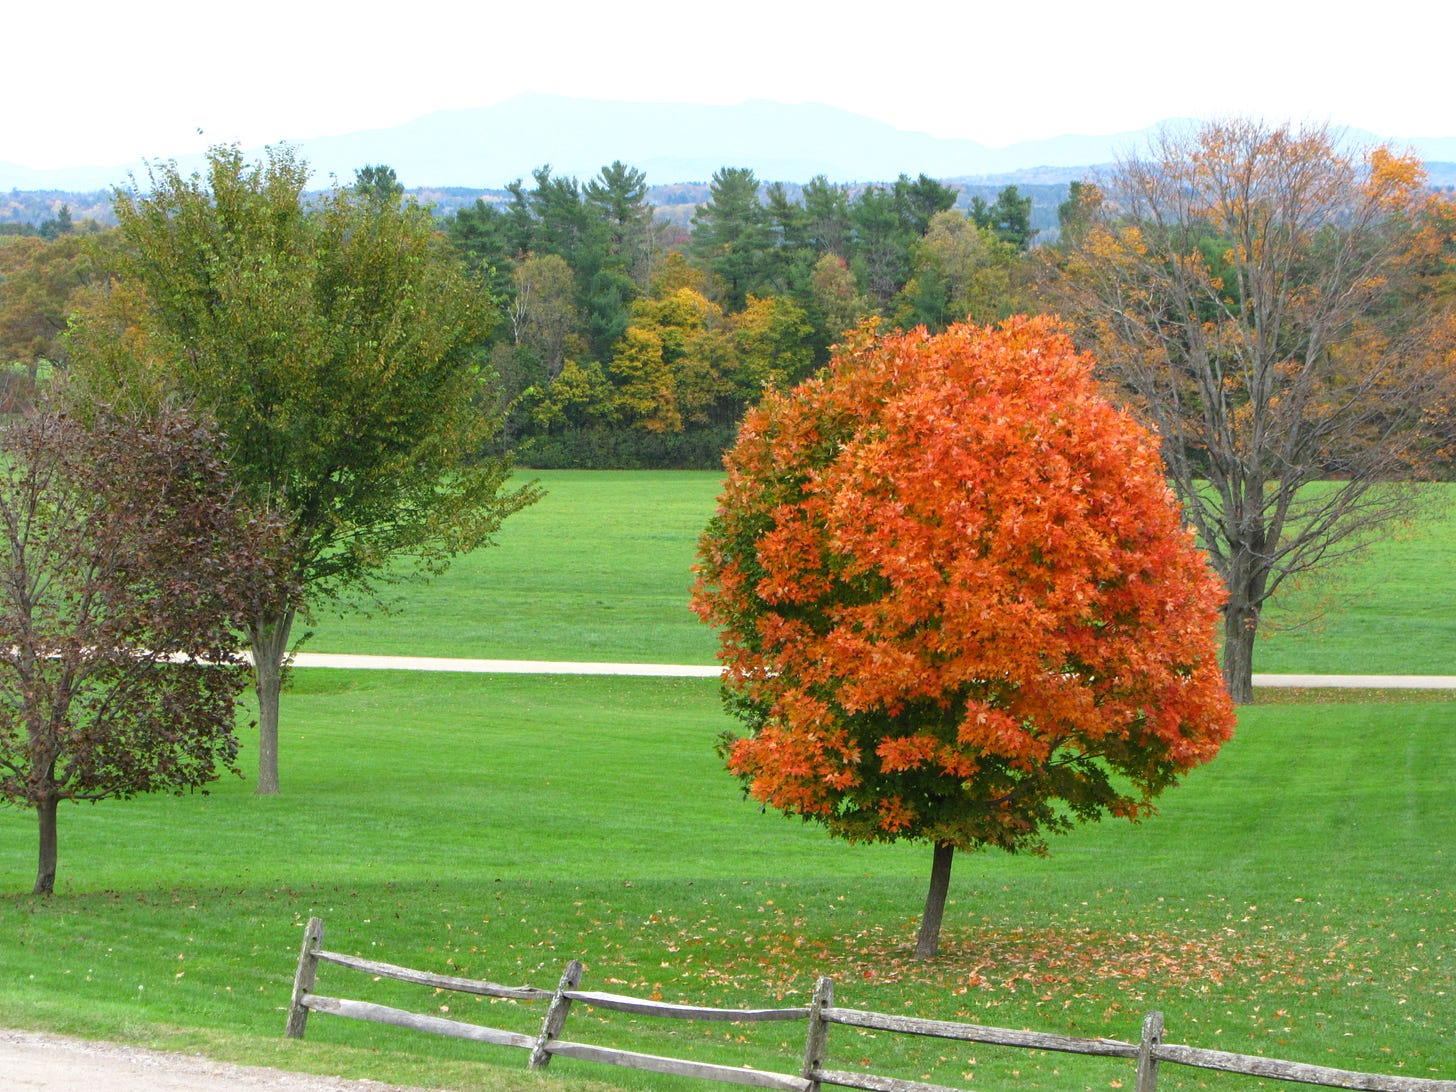 A single maple tree in full autumn color